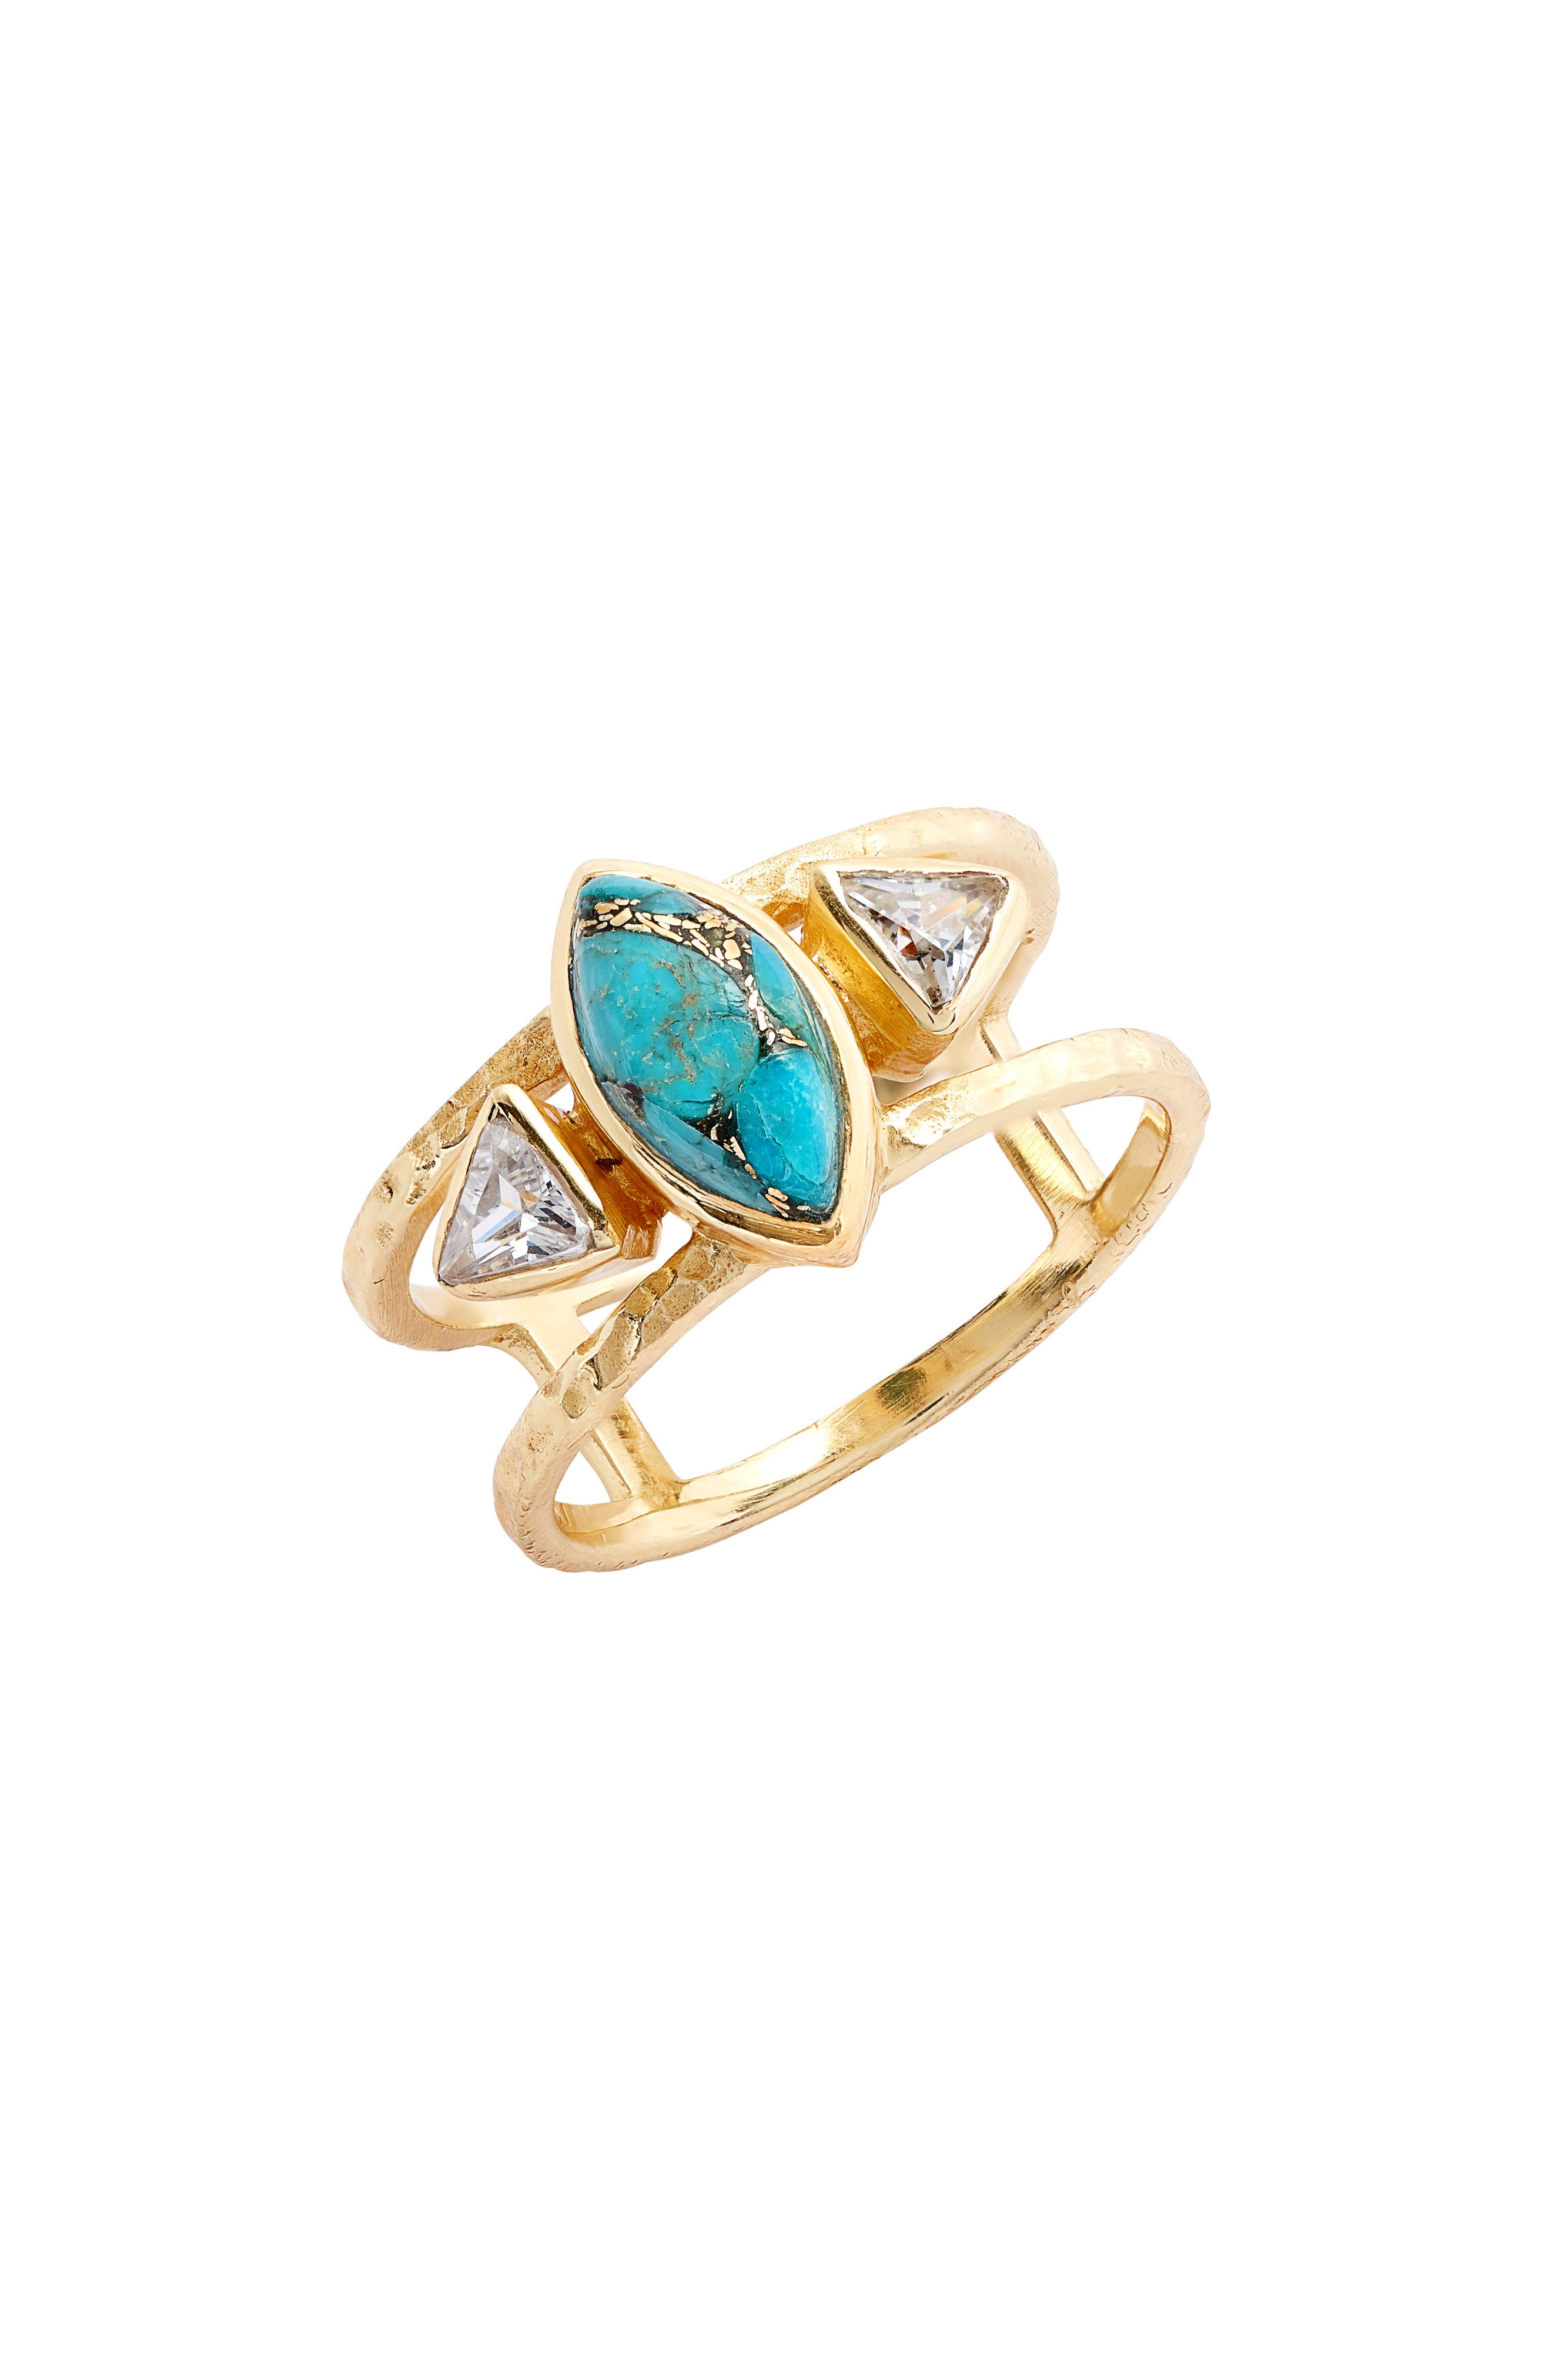 COLLECTIONS BY JOYA,                             Avenue Turquoise Ring,                             Main thumbnail 1, color,                             440